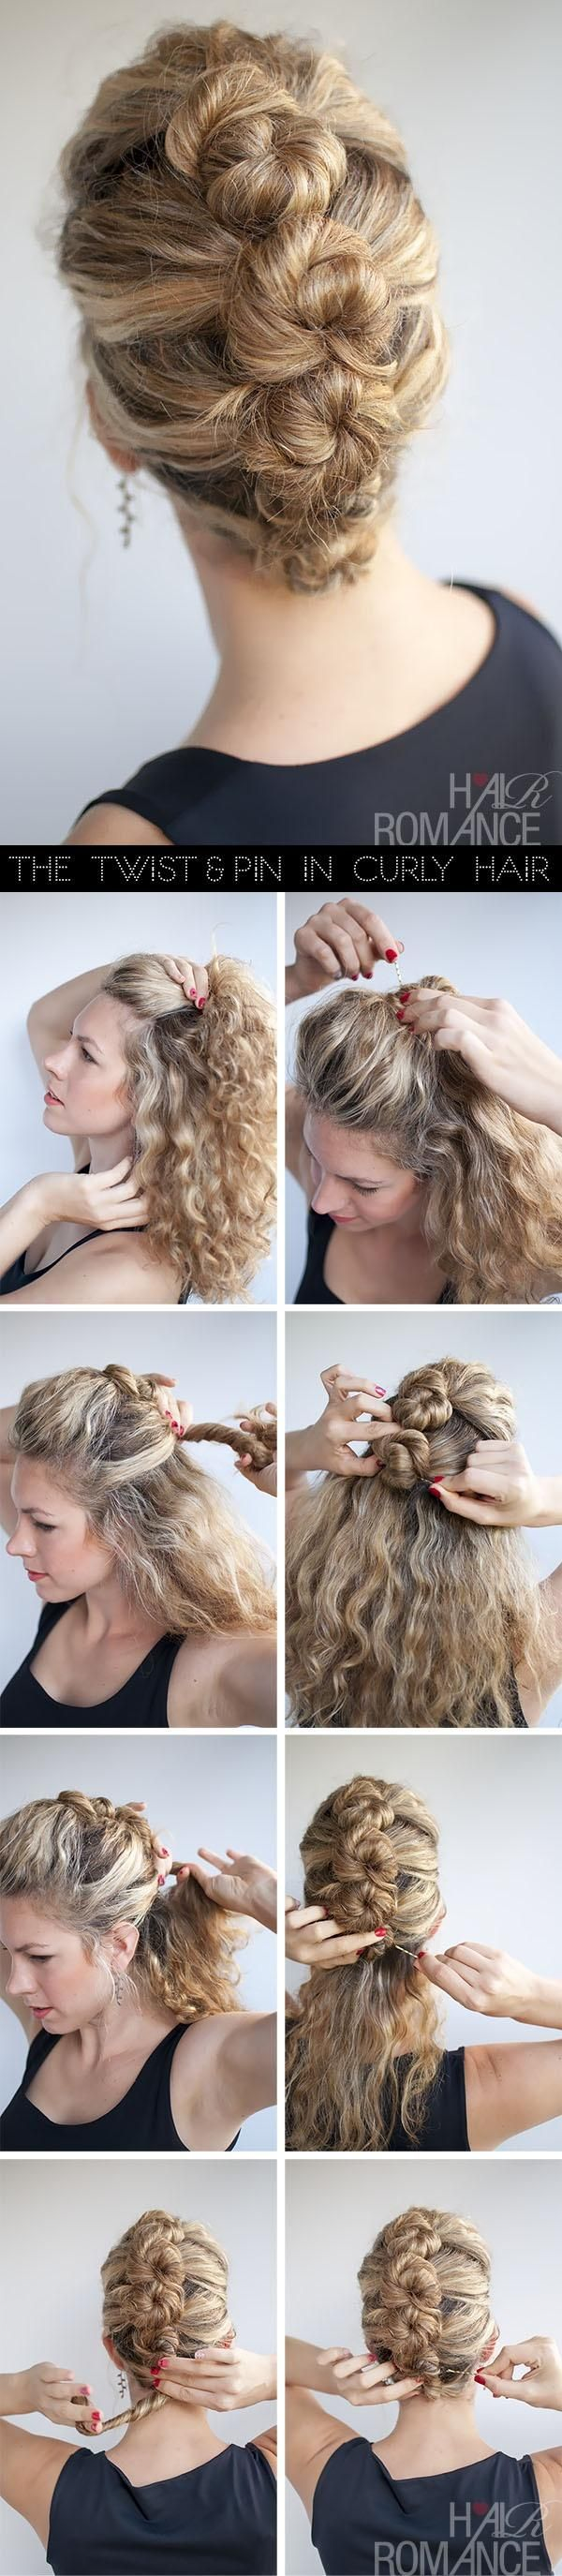 hairstyles for curly hair french twists romance and blondes